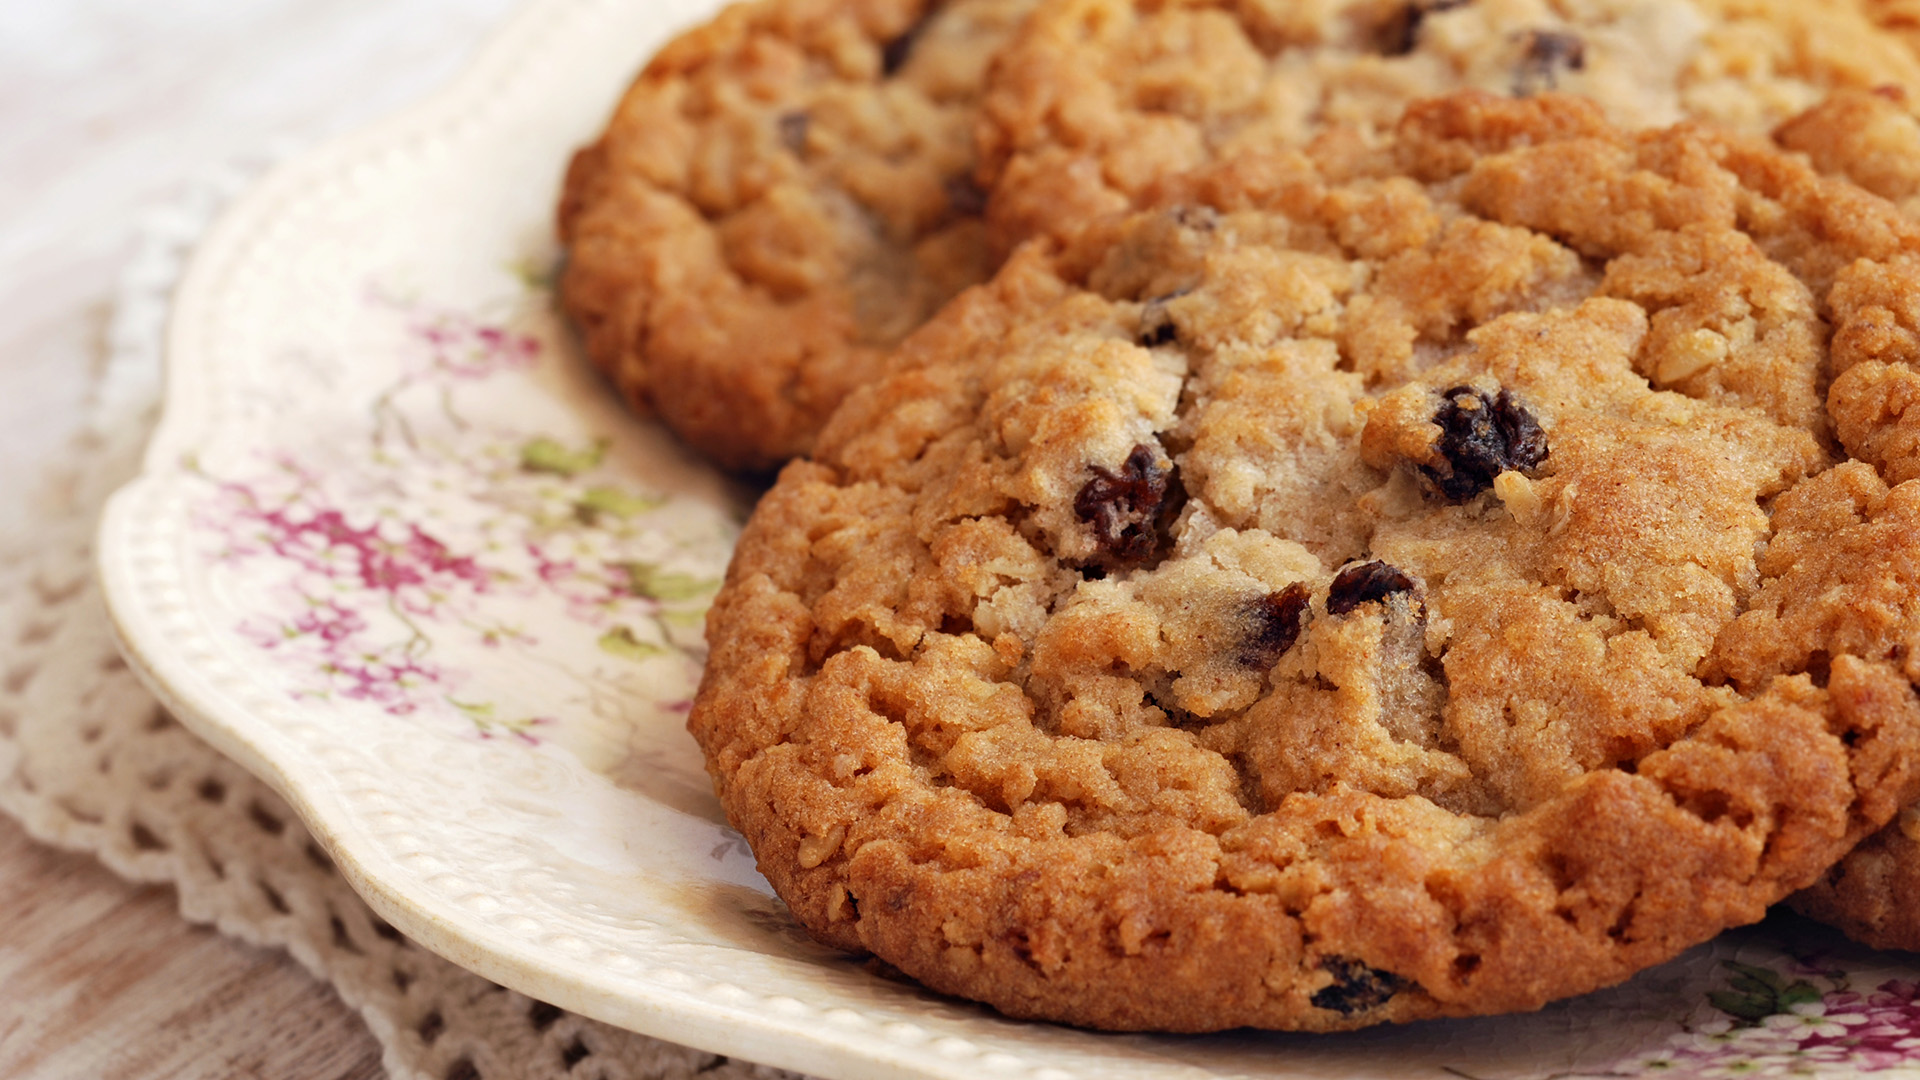 Healthy Oatmeal Raisin Cookies - TODAY.com